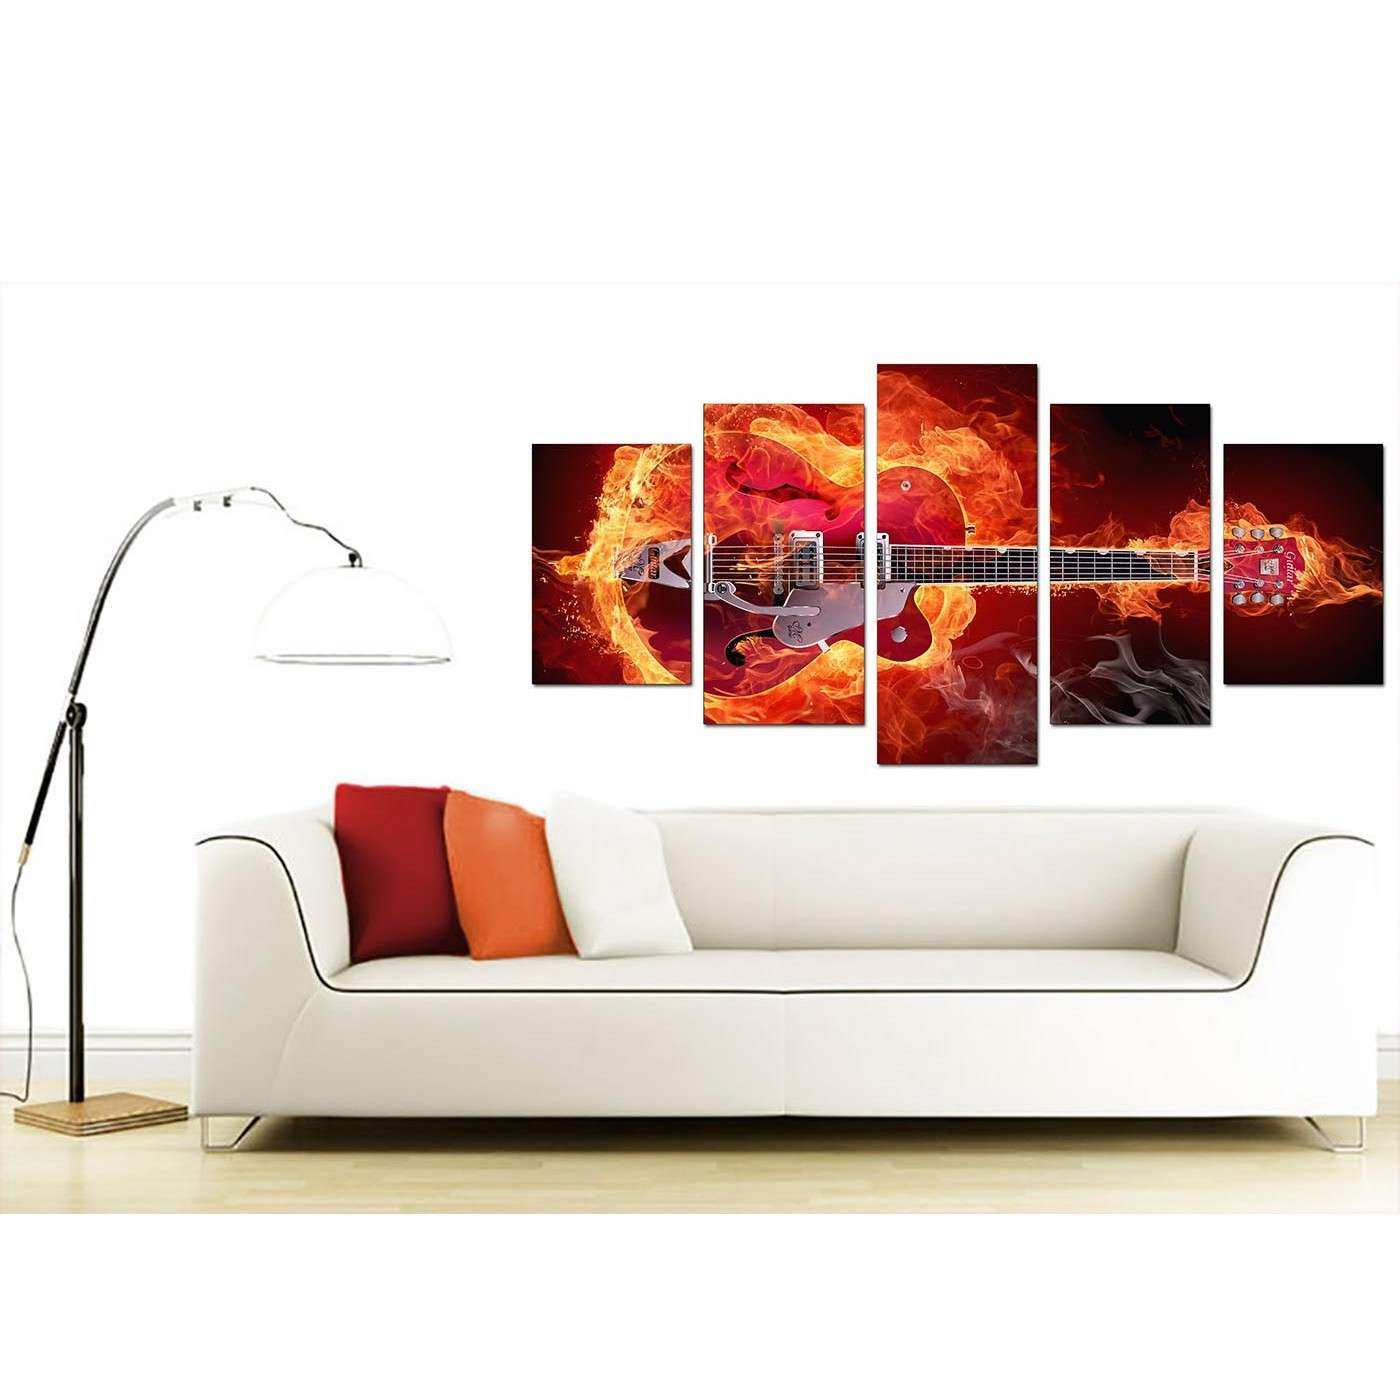 Extra Guitar on Fire Canvas Five Piece in Red